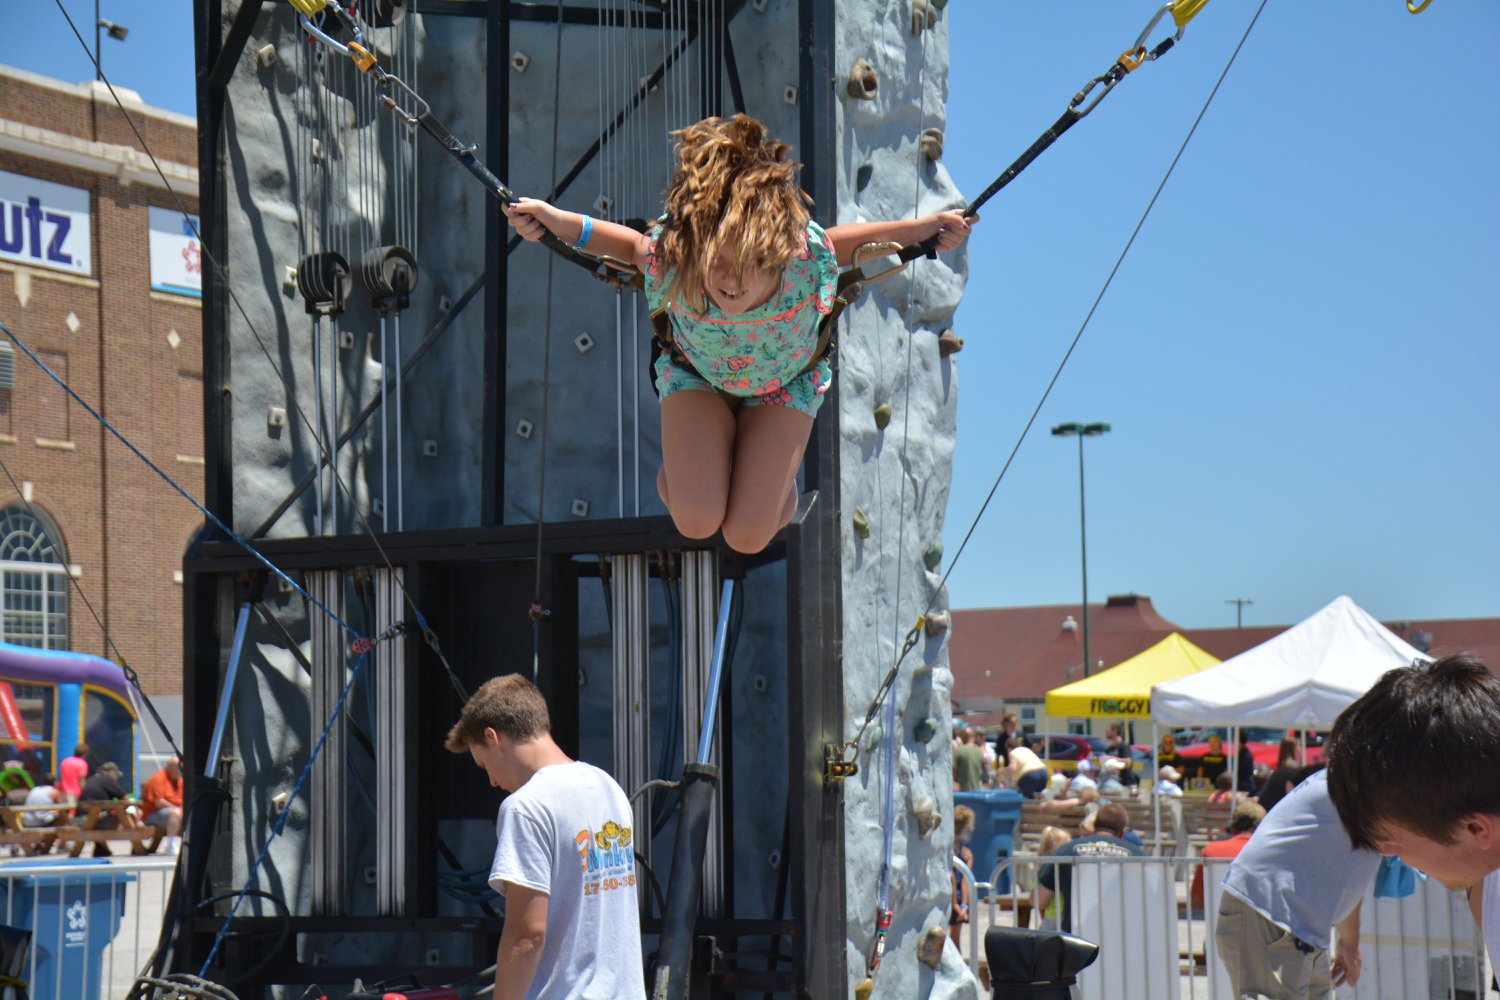 Girl doing a flip on Euro Bungy